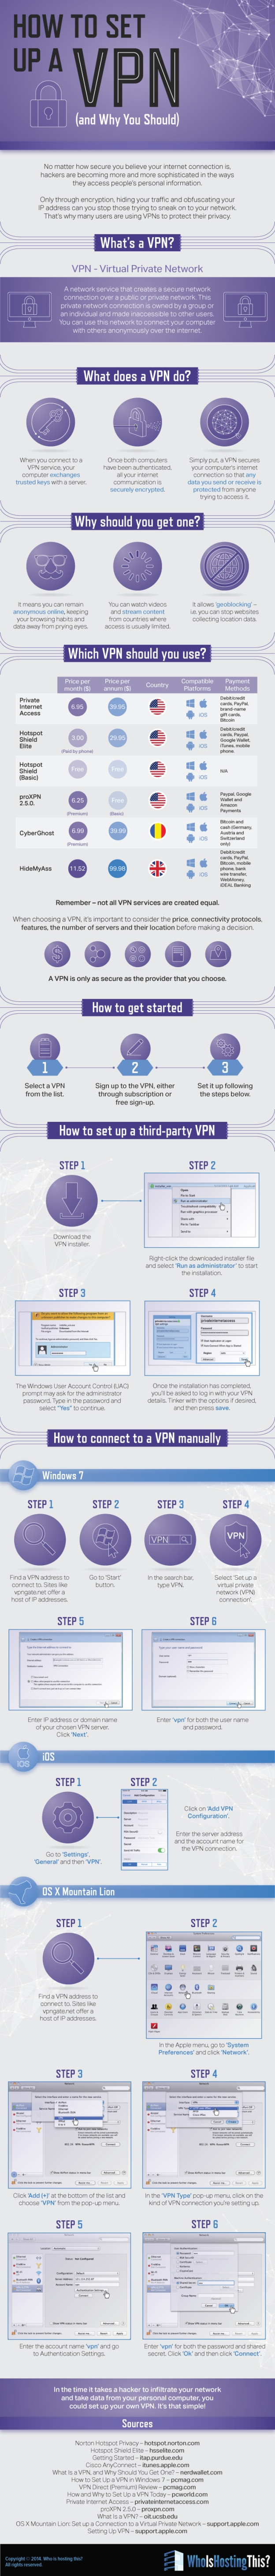 V3-How-to-set-up-a-VPN